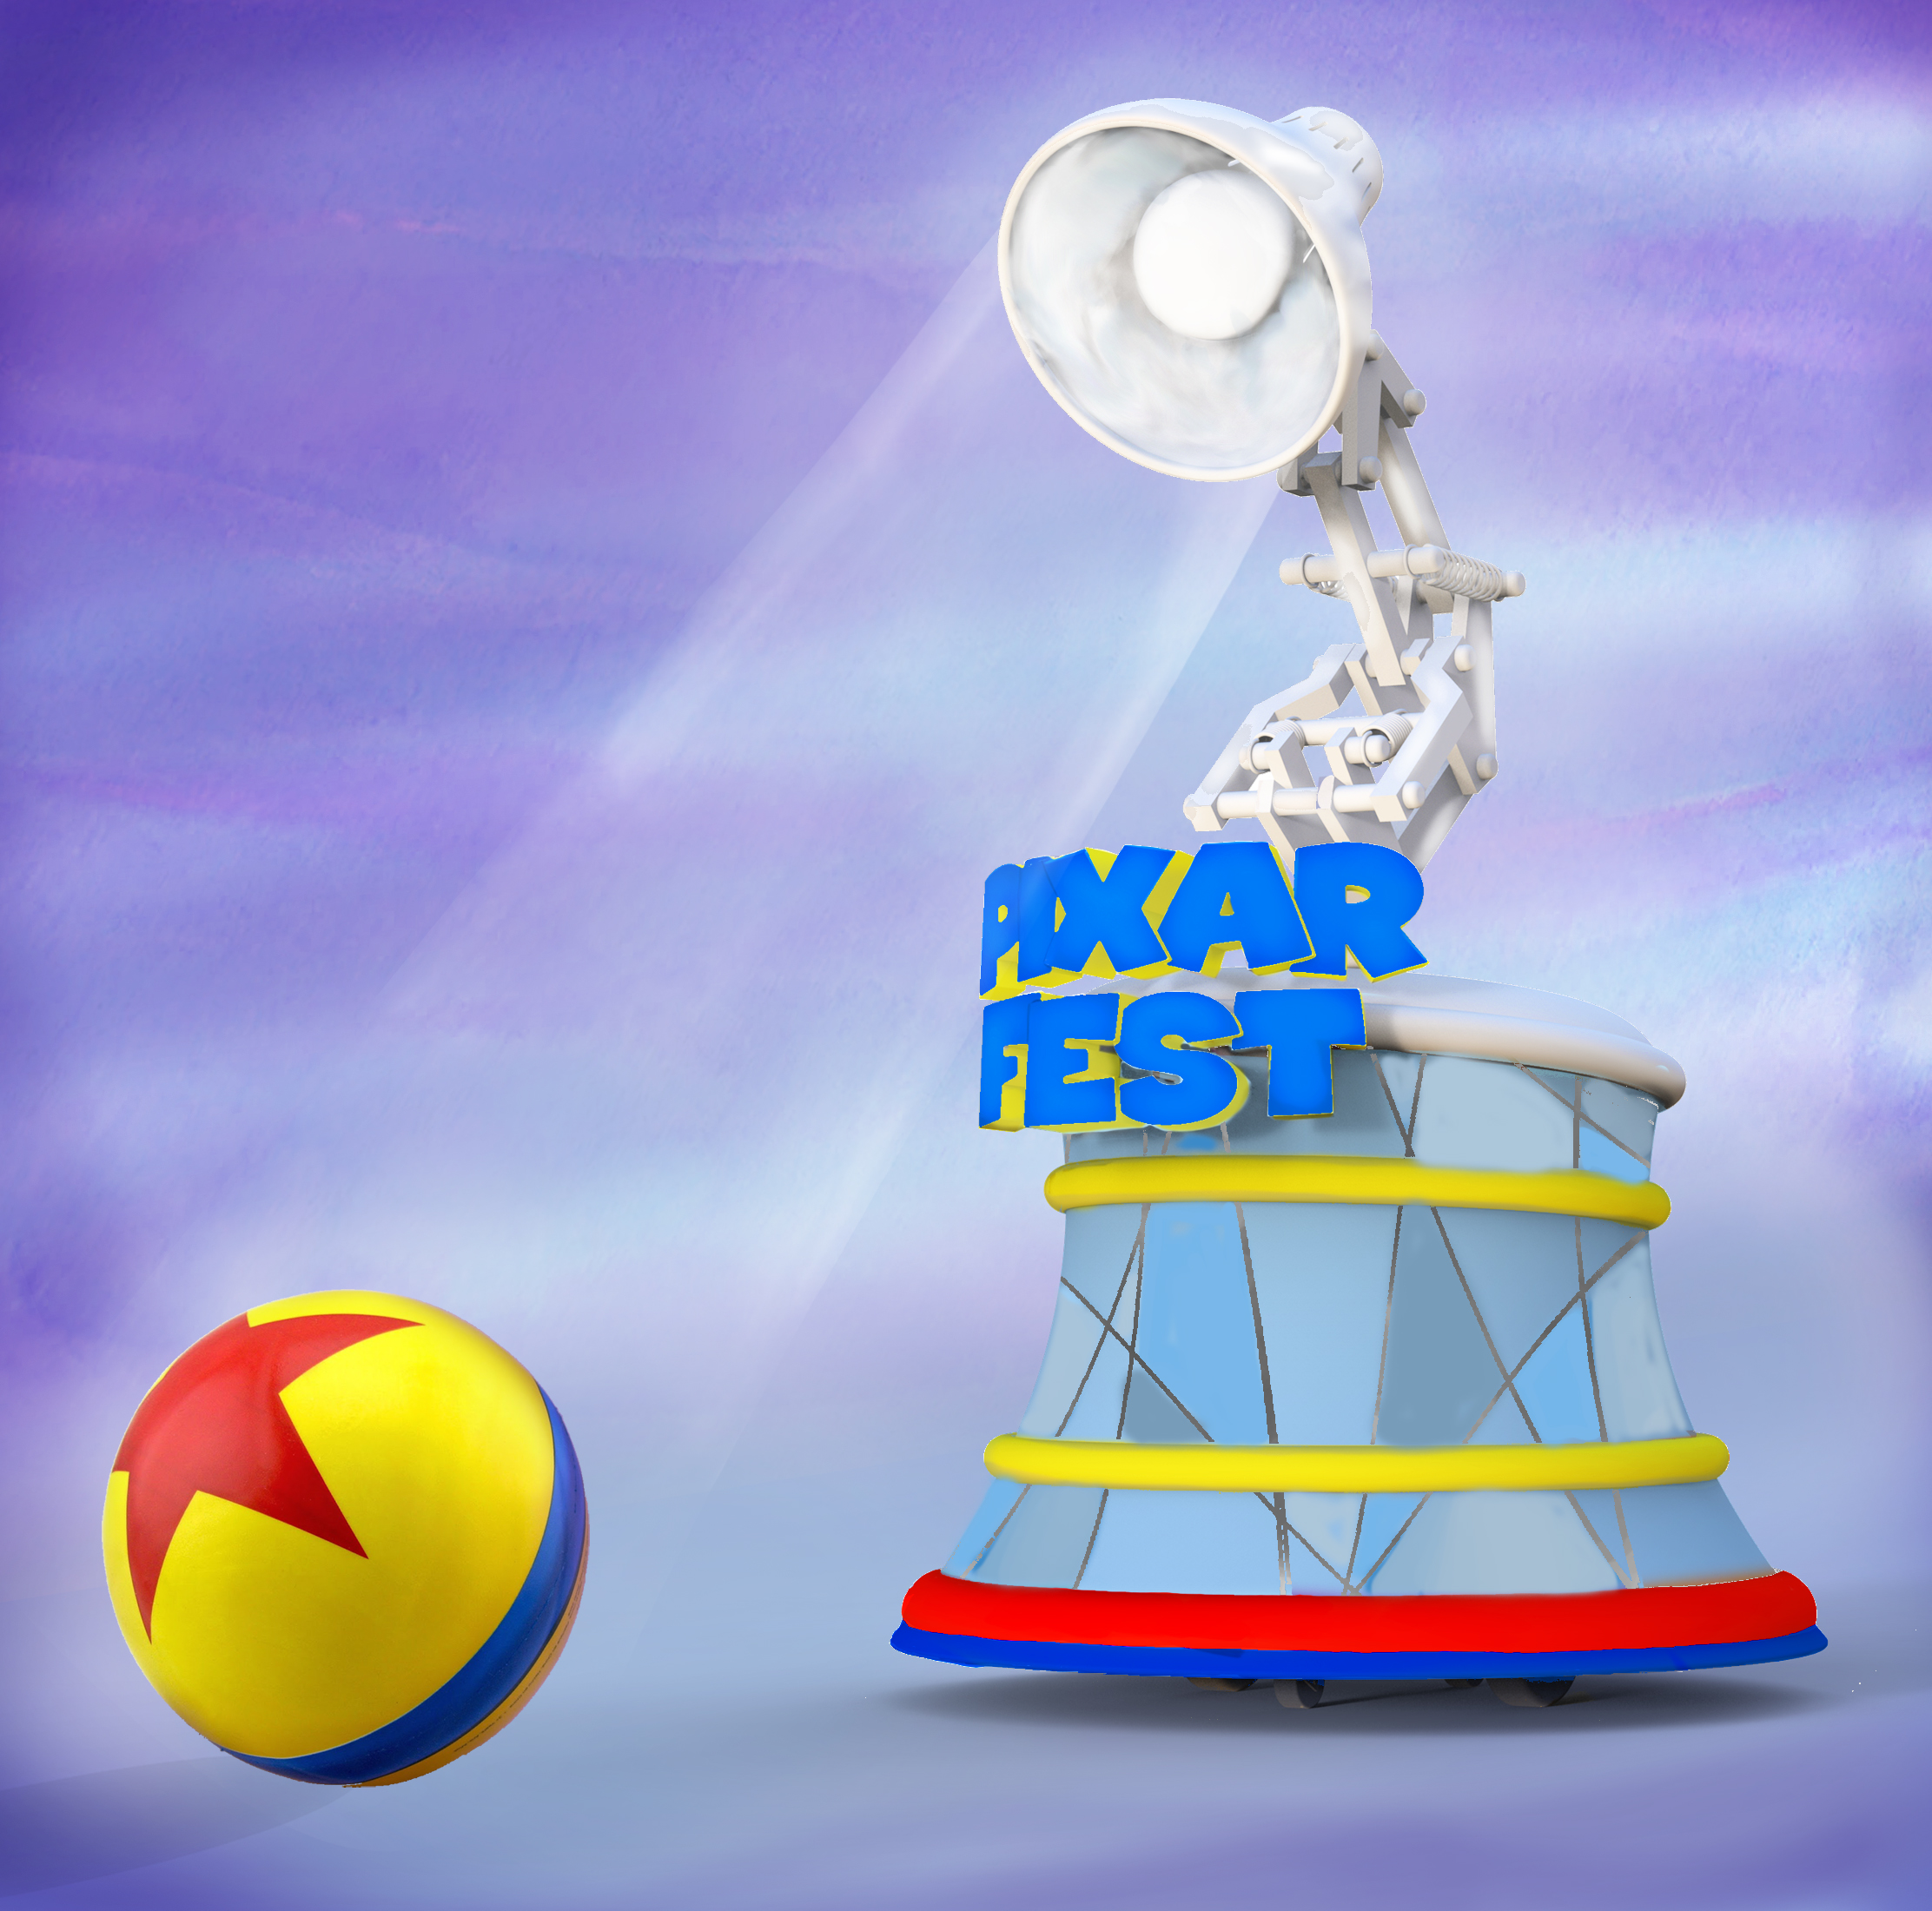 The parade will begin as all Pixar films have, with an appearance by the iconic and adorable Pixar Lamp. Rolling ahead of the famous lamp will be the familiar yellow Pixar Ball, making a cameo in Pixar Play Parade, as it has in many Pixar films.